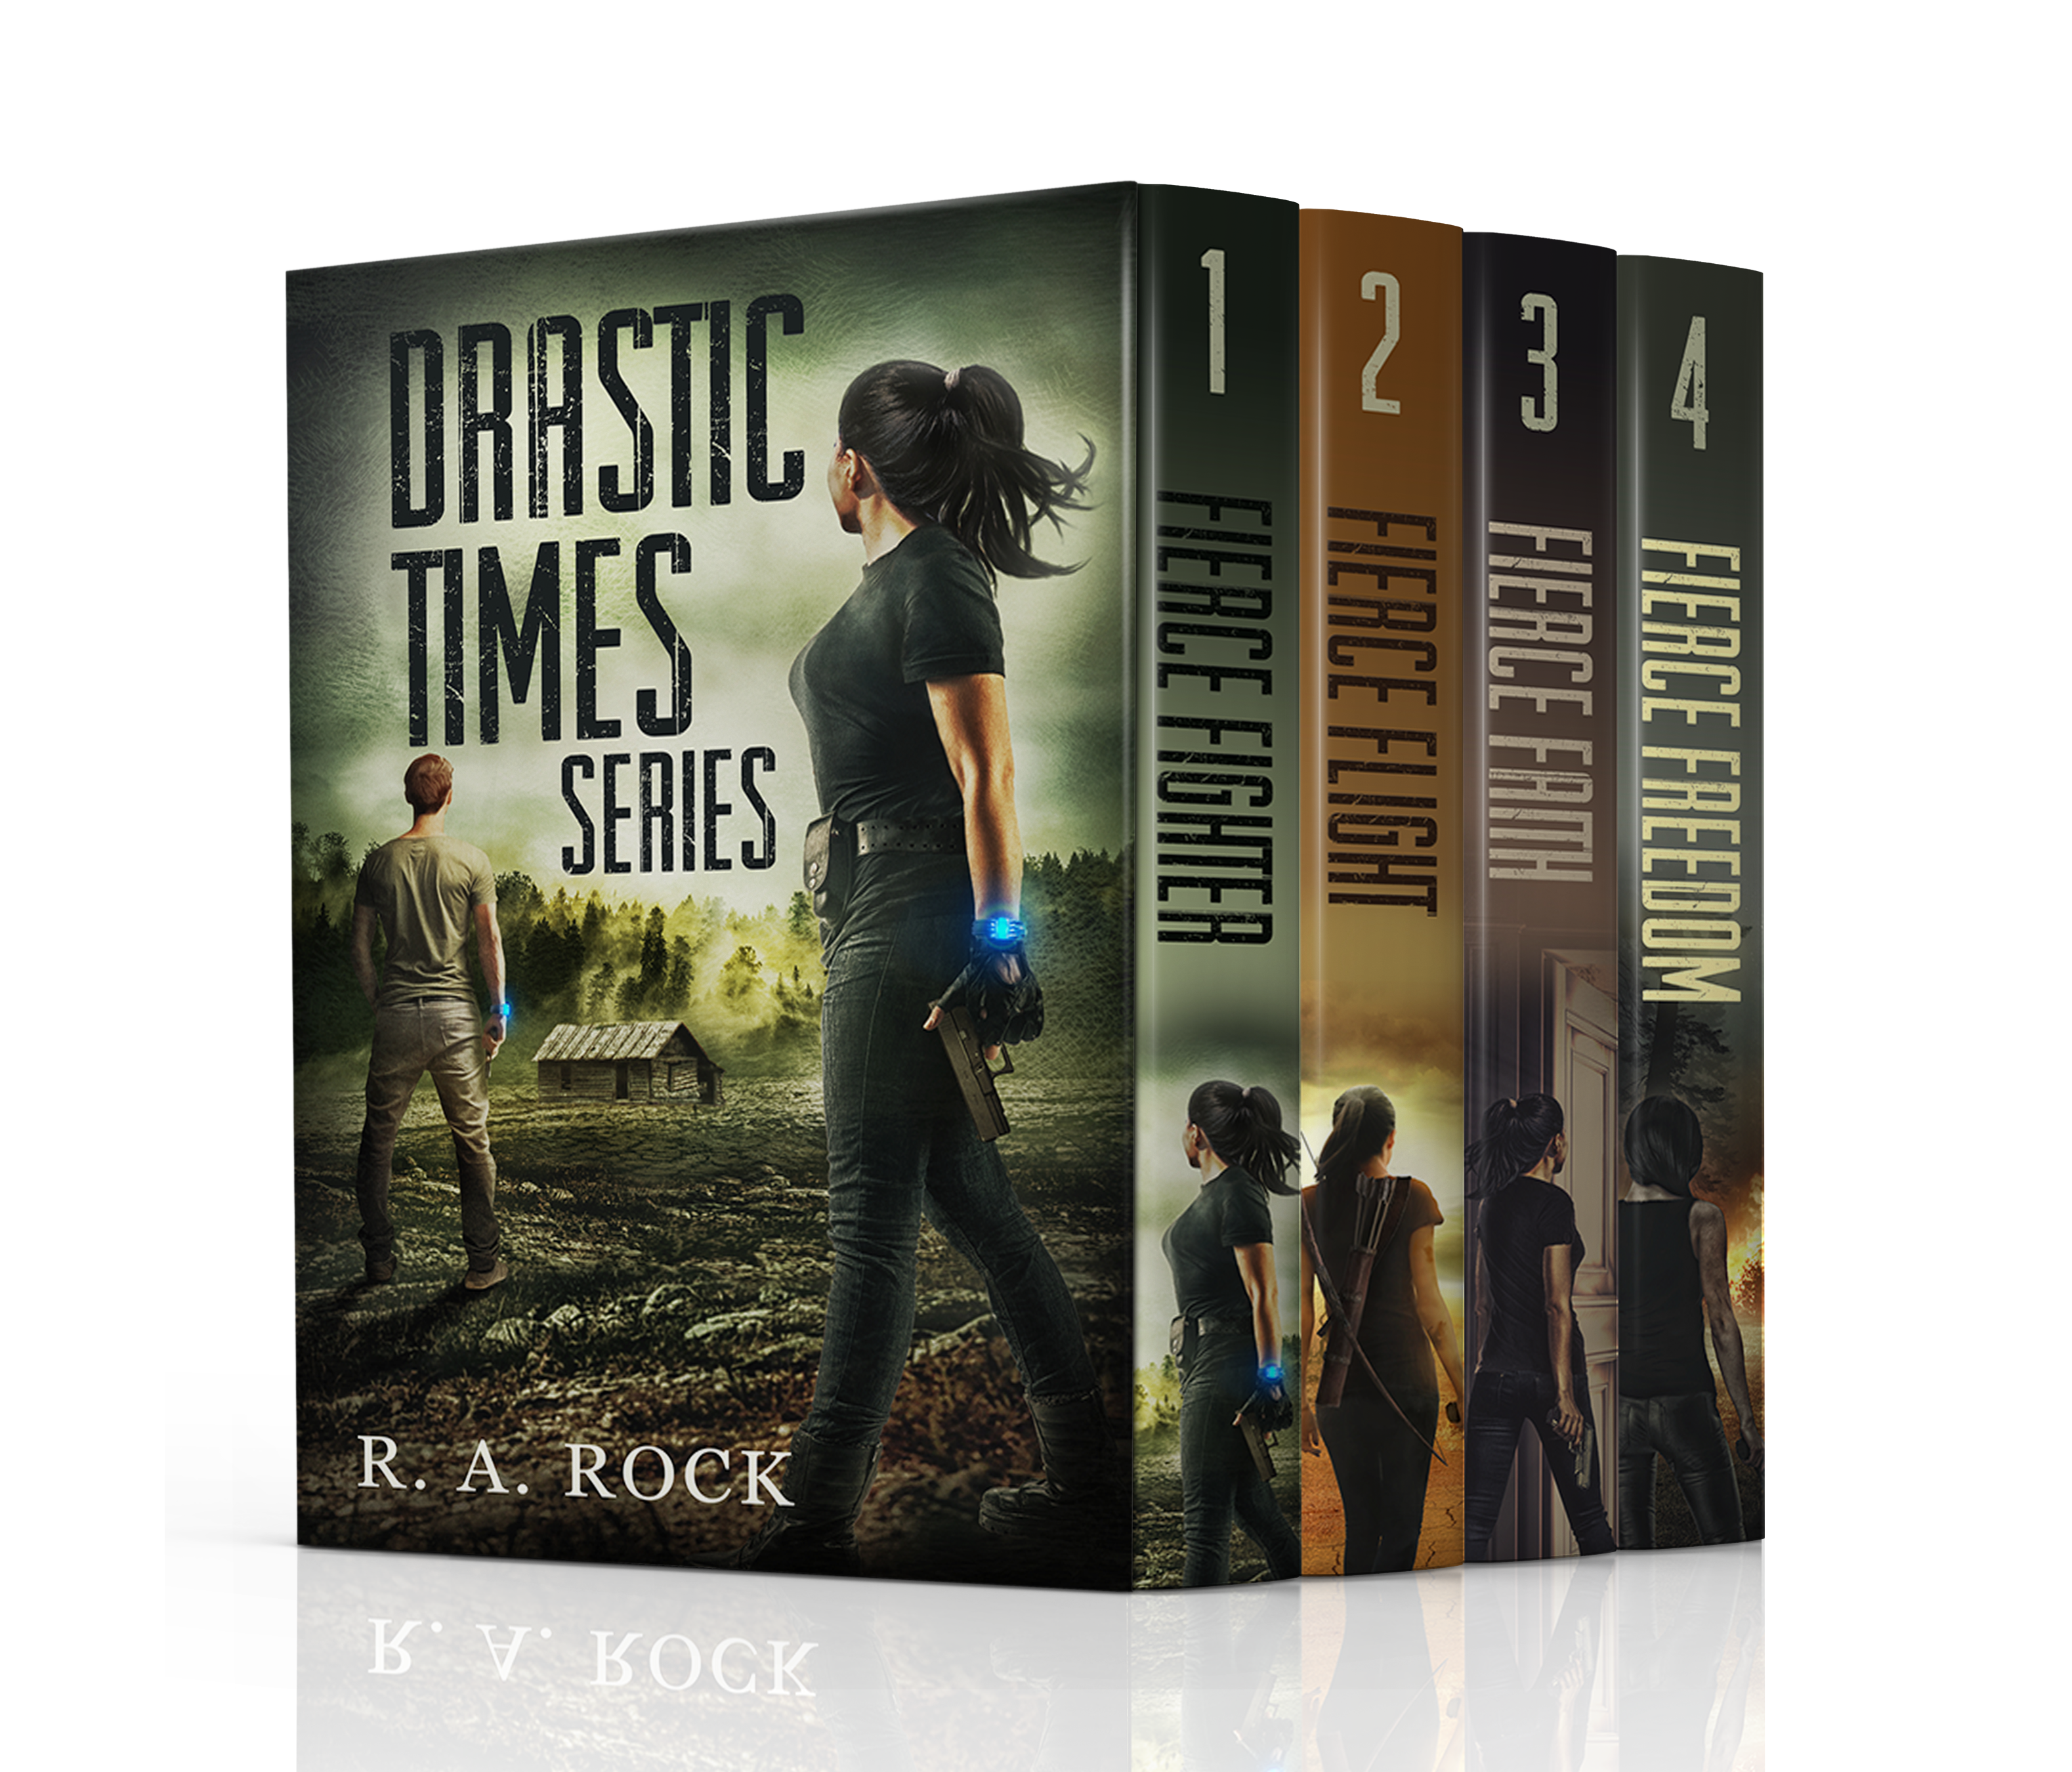 Drastic Times Book 4 and Box Set